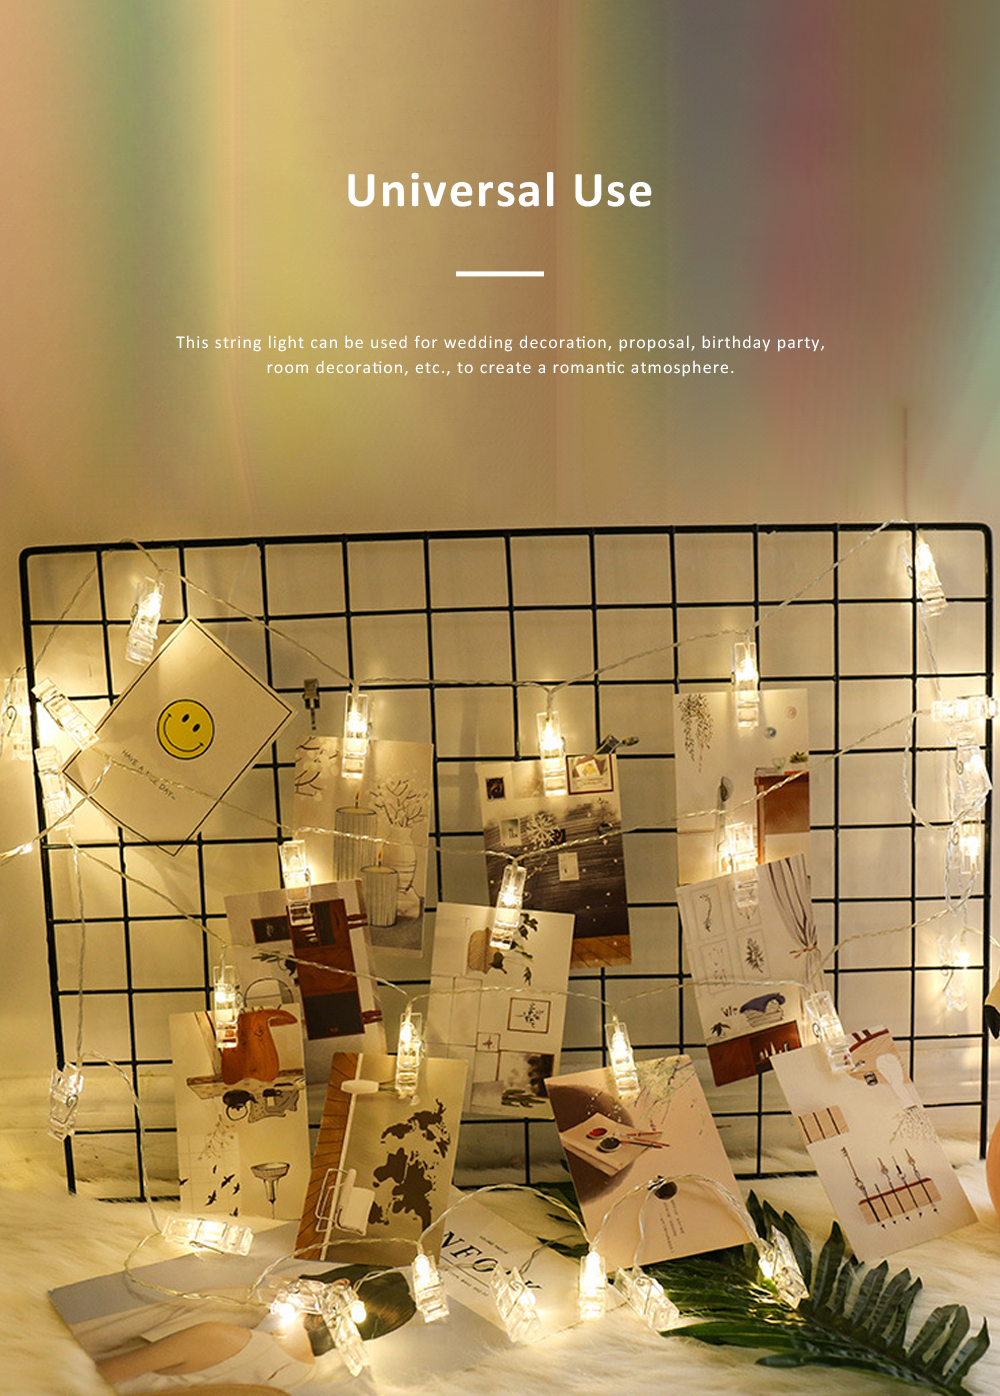 Led Star String Lights with Battery Powered Waterproof Clip String Postcard Photo Decoration Light for Indoor Outdoor Wedding Party Wall Garden 4